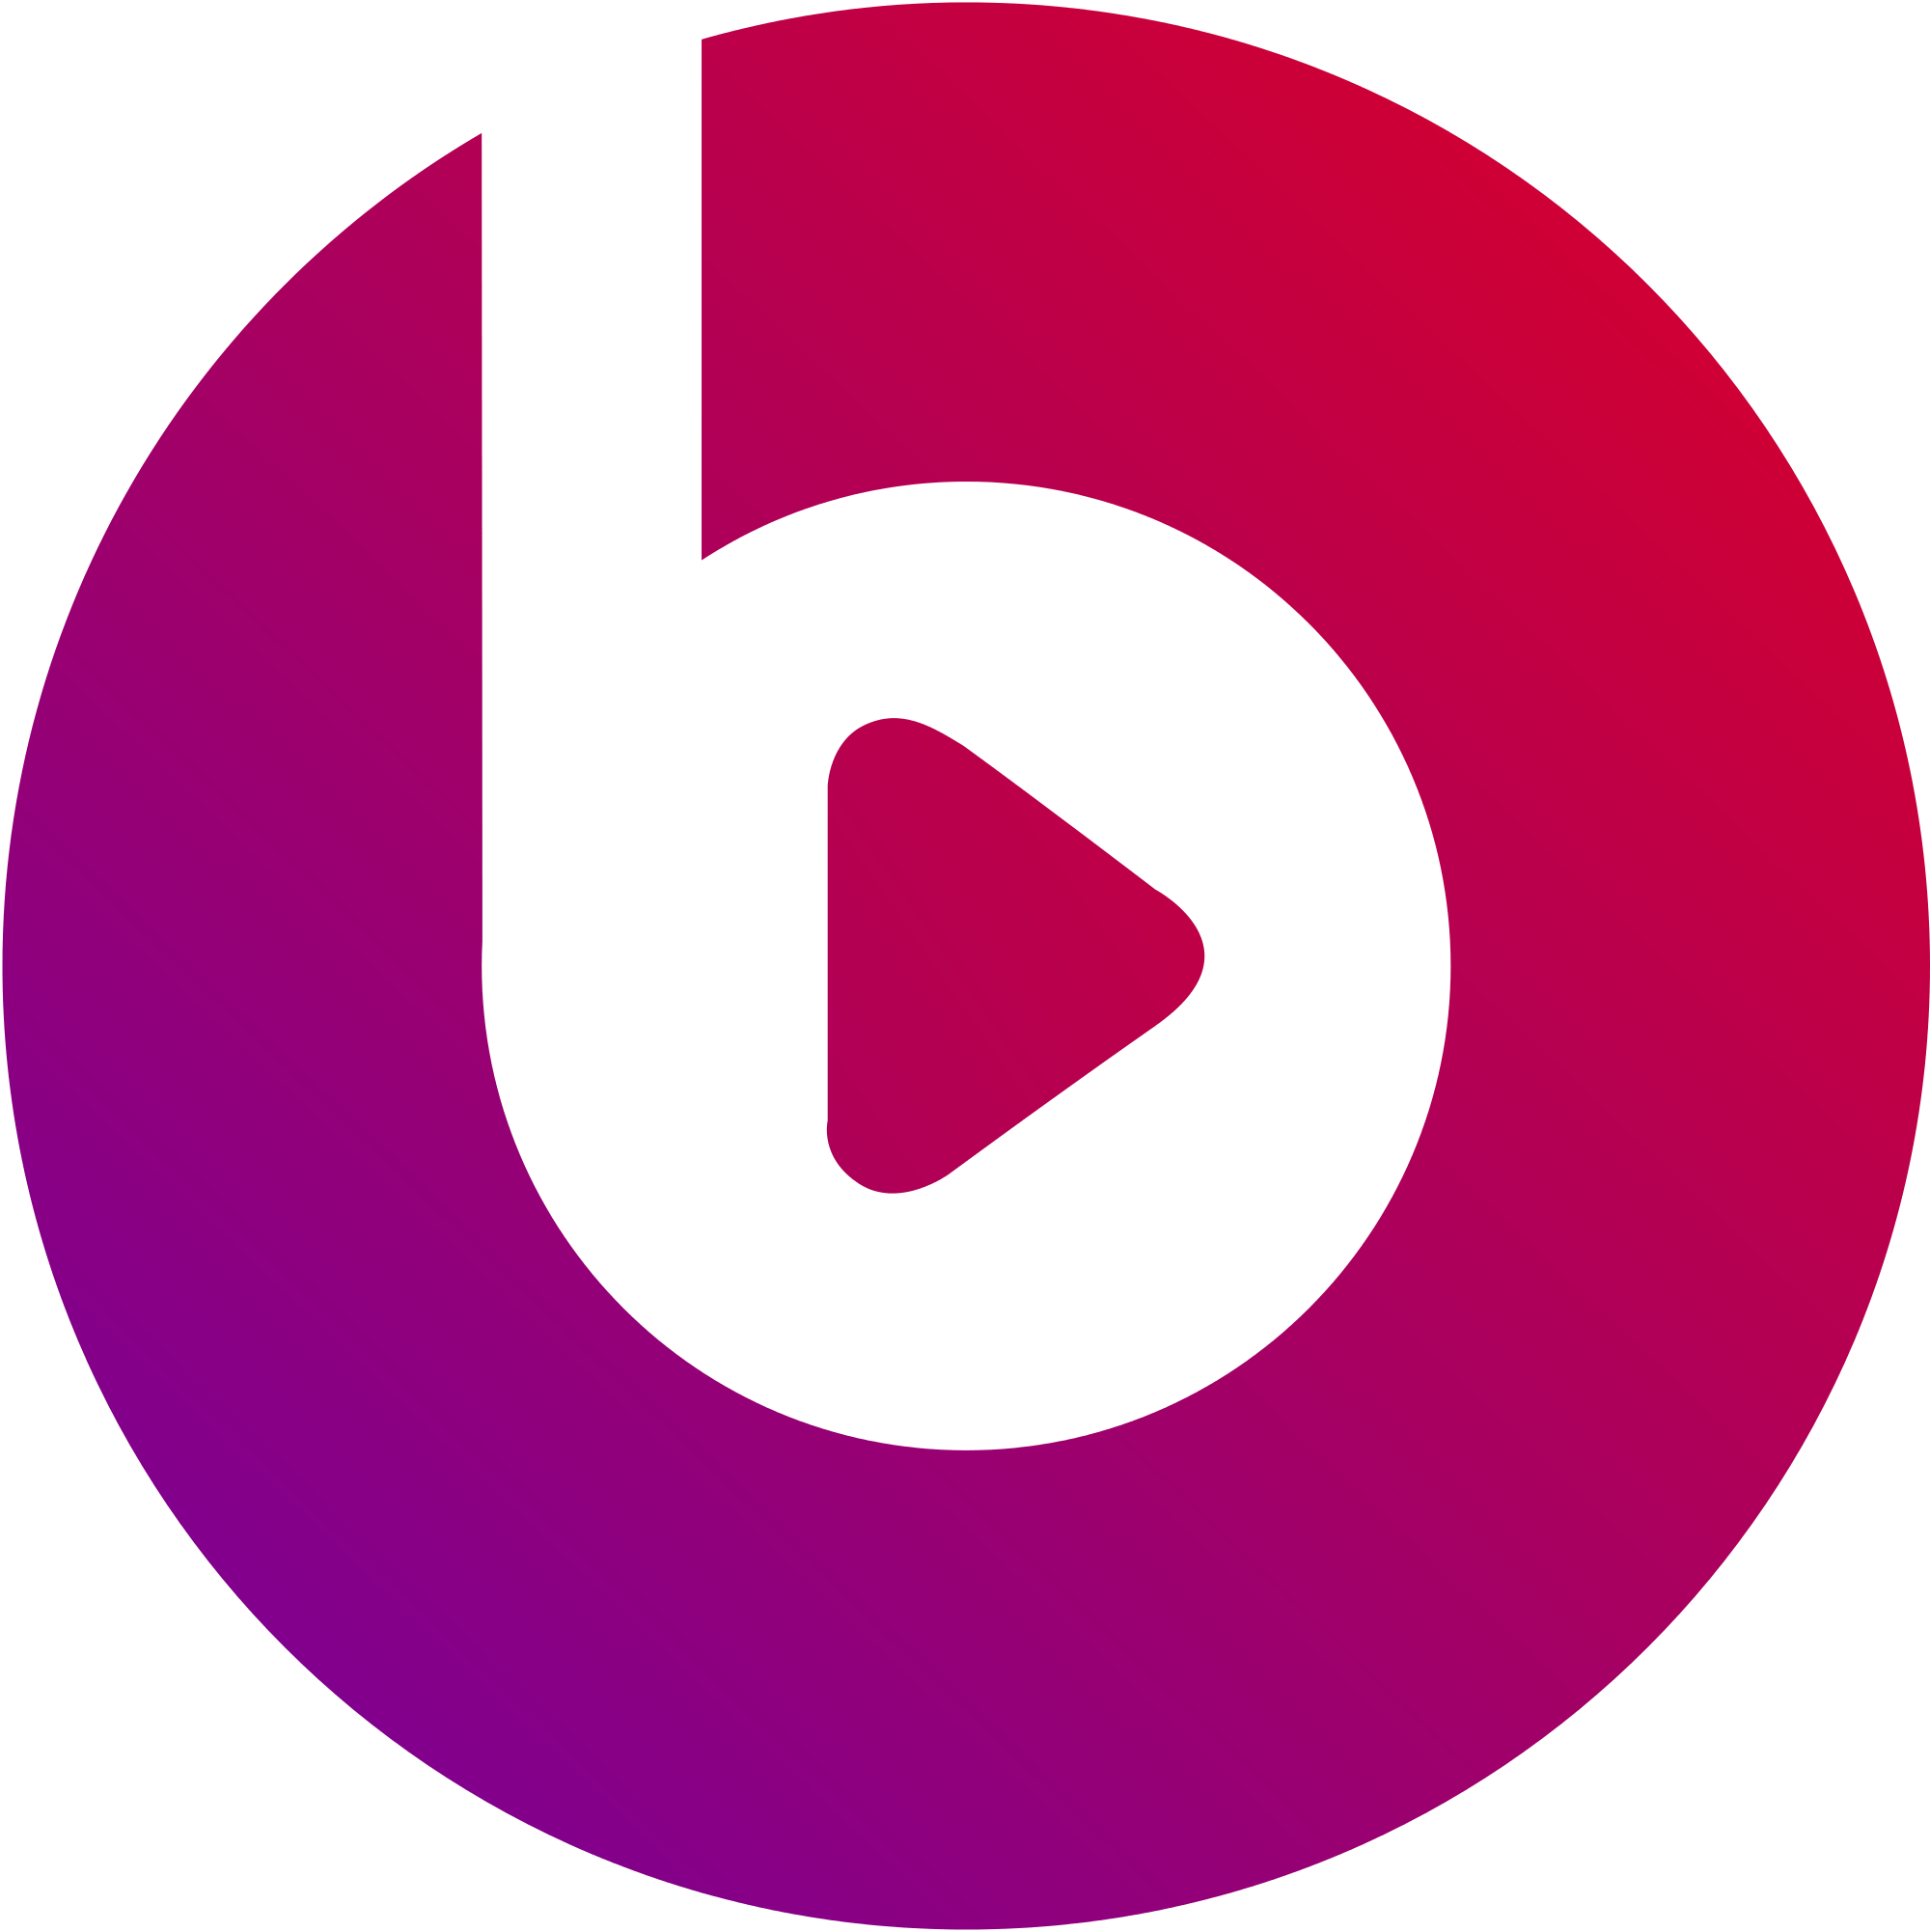 Beats Logo Transparent Png.